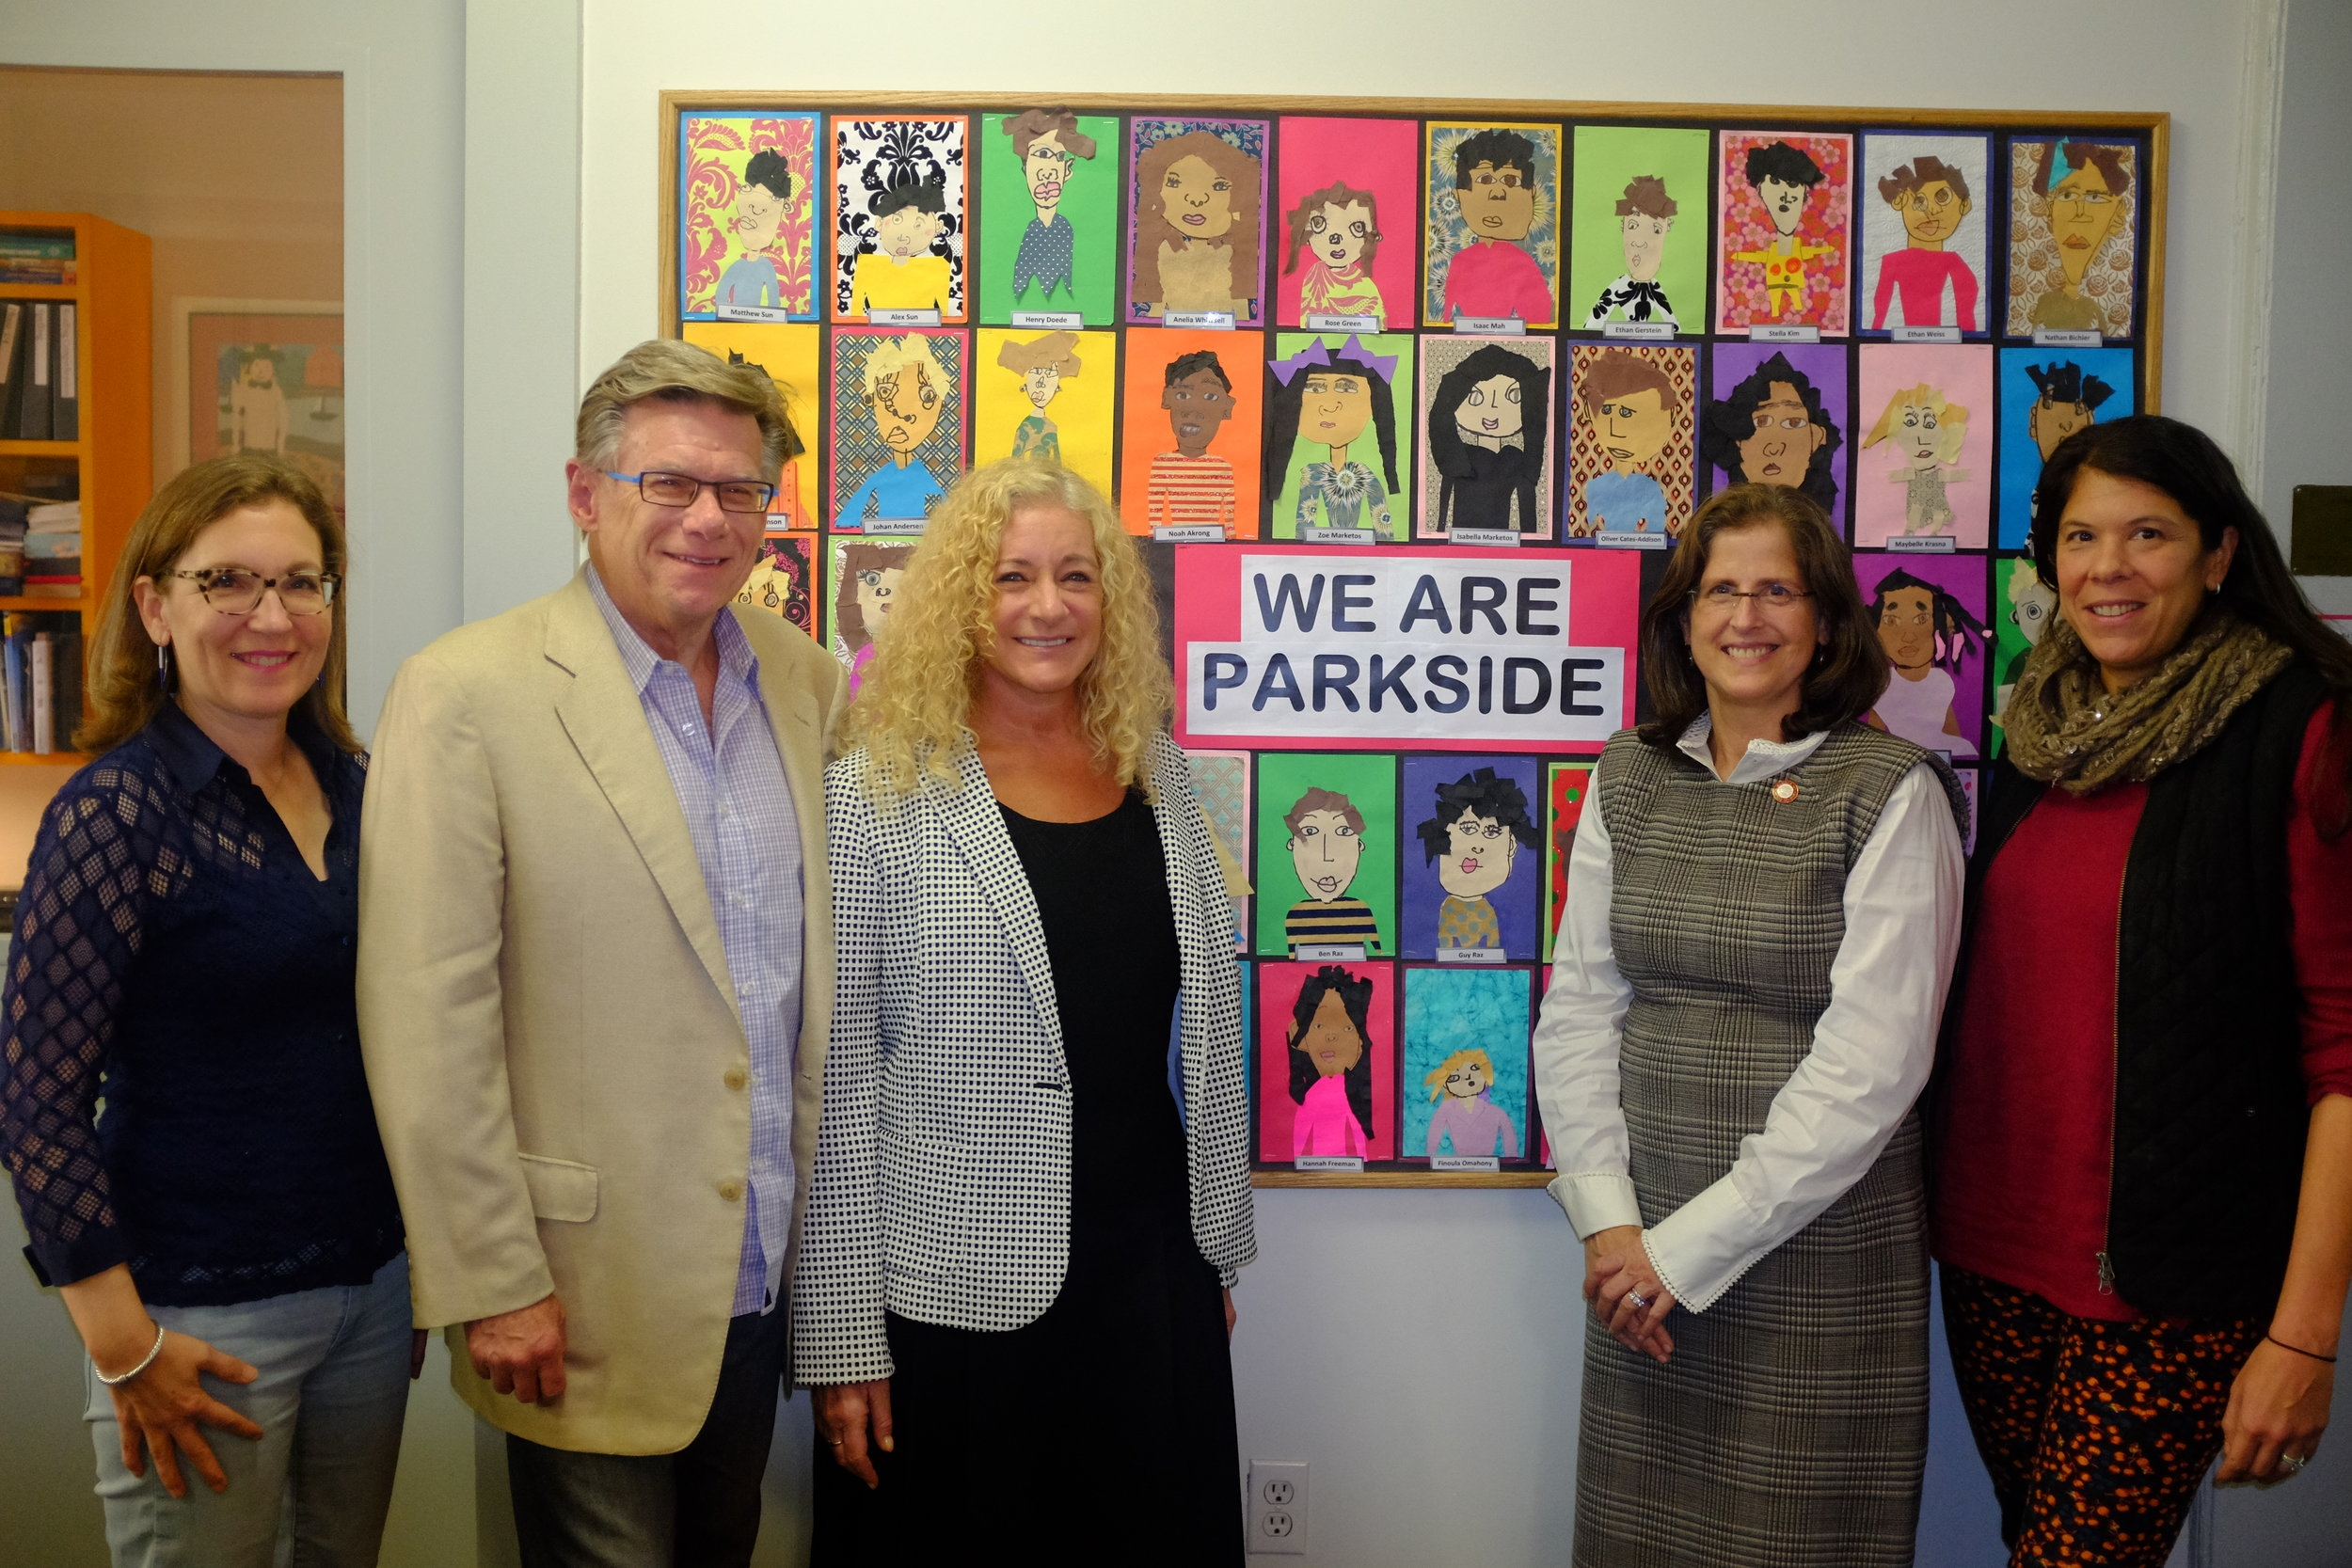 From left to right, Cindy Cardinal, Parkside Board Member, Alan Pearson, Parkside Board President, Leslie Thorne, Co-Head of School, Helen Rosenthal, City Council Member, Laurie Marshall, Parkside Parent.